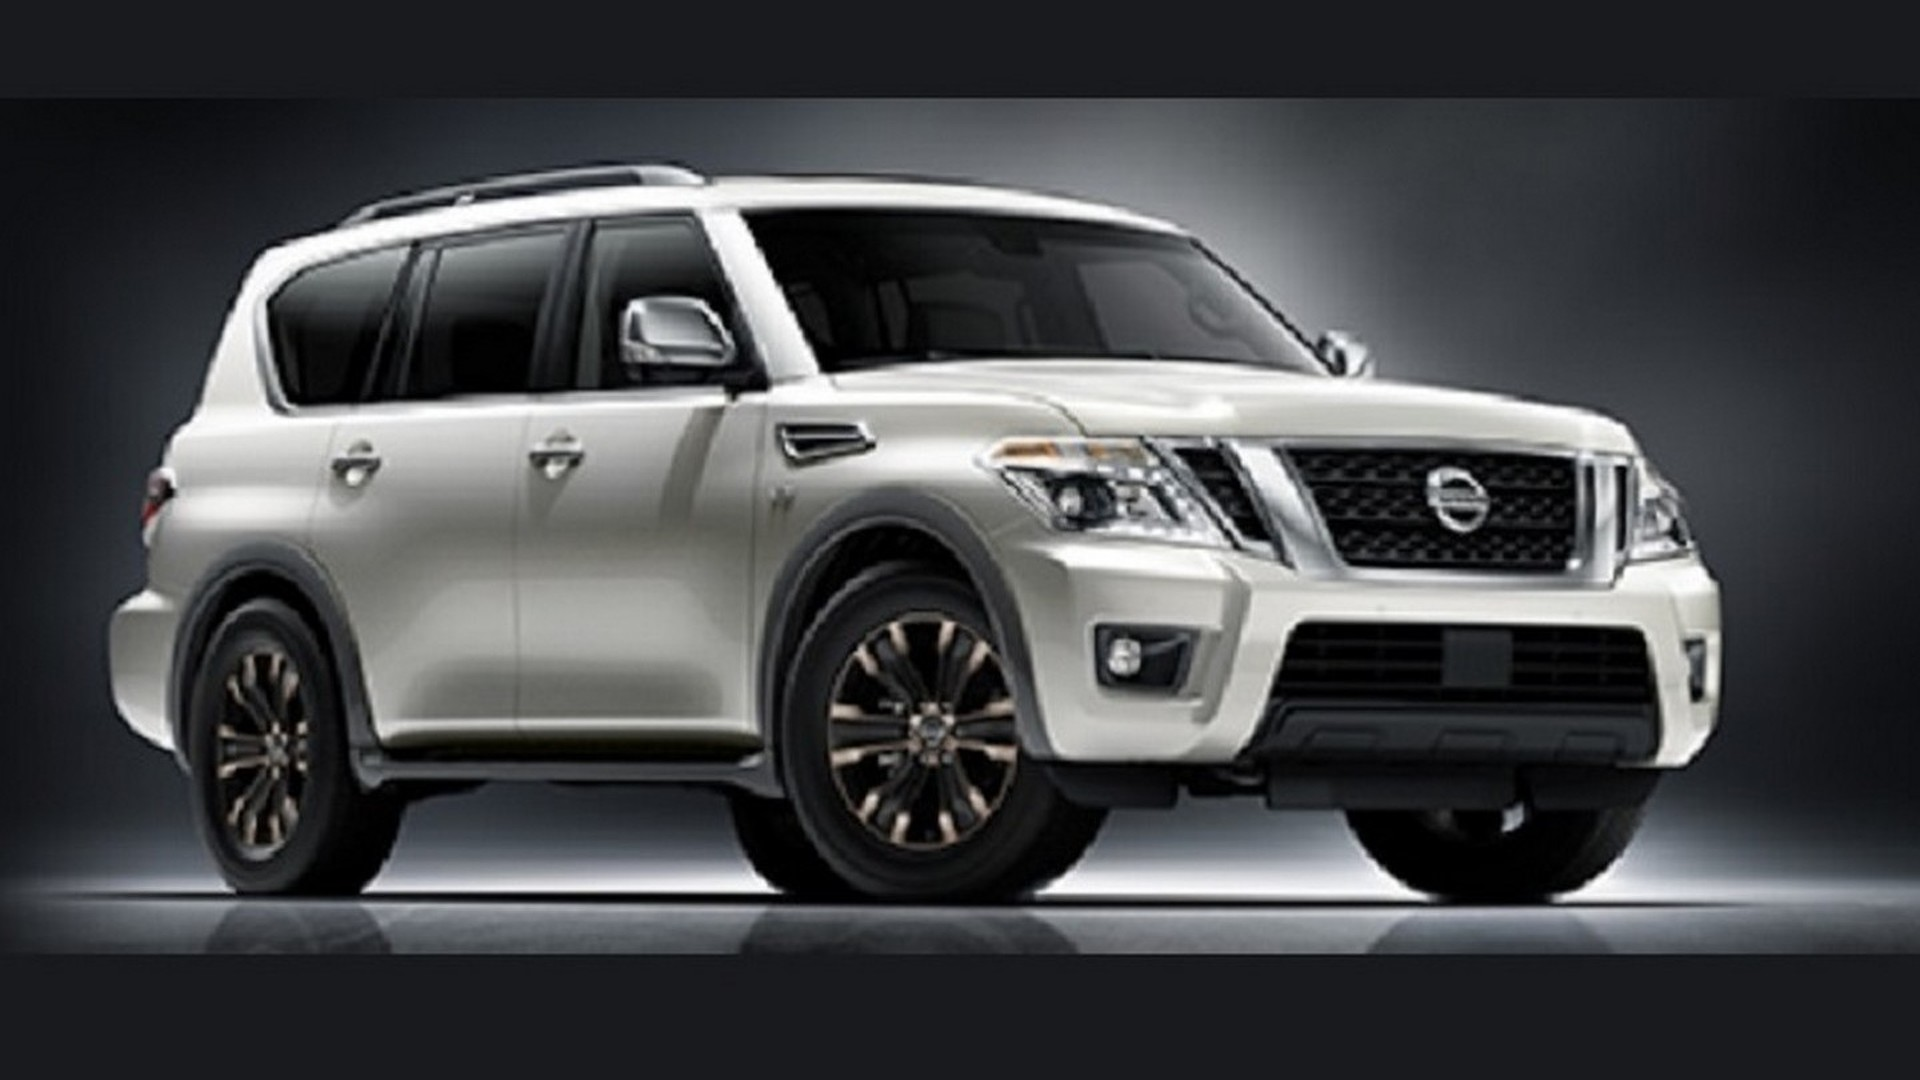 nissan armada images of best on pinterest pathfinder fresh